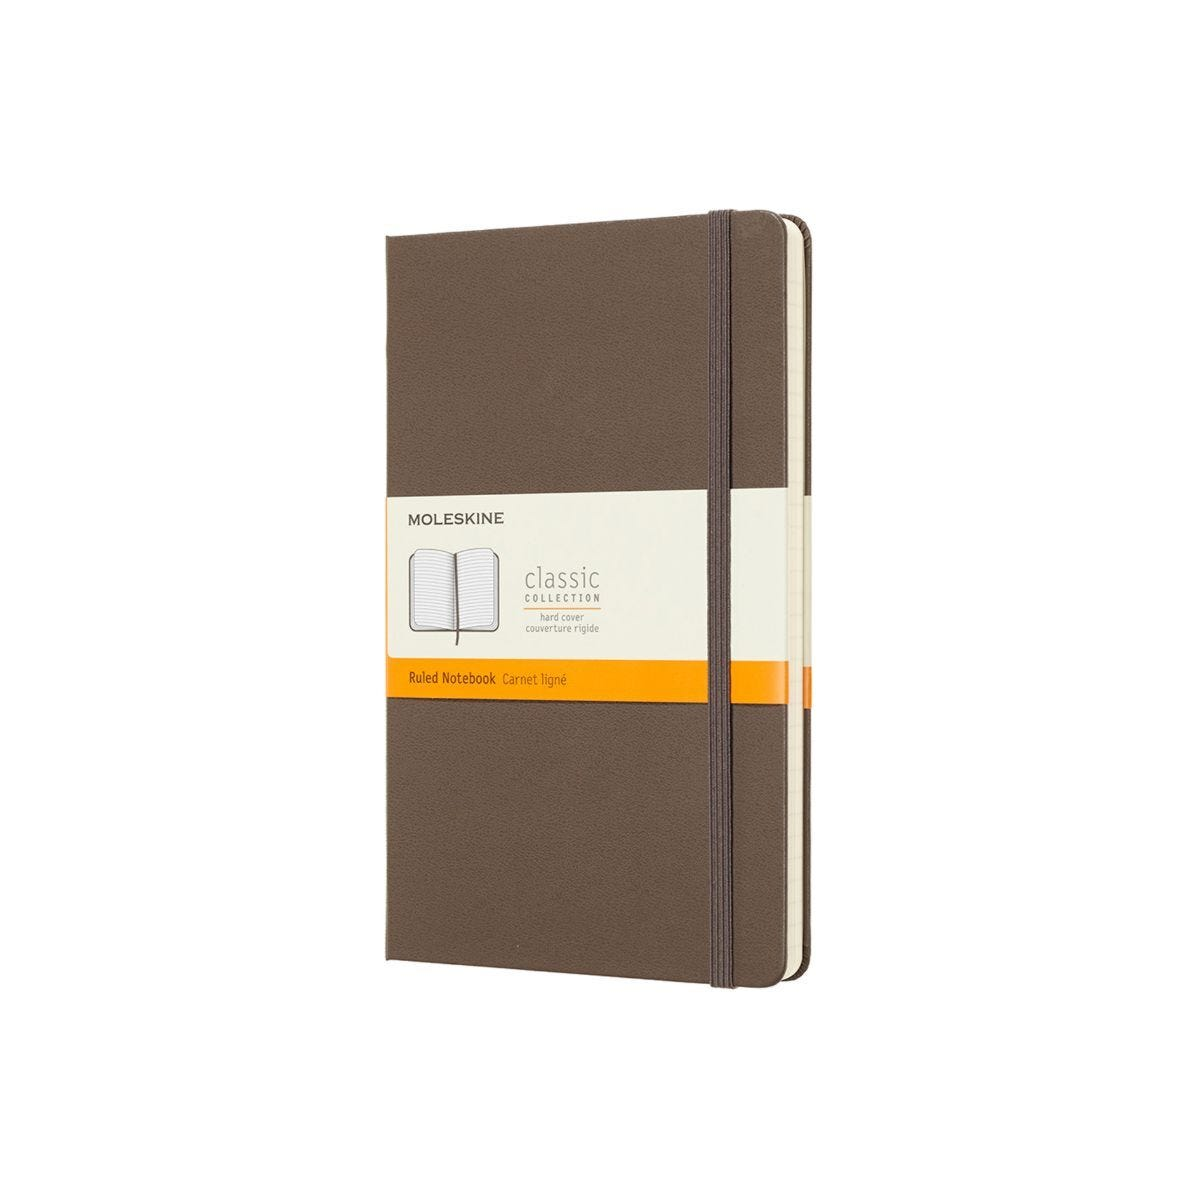 Moleskine Hard Cover Classic Notebook Large Ruled Brown